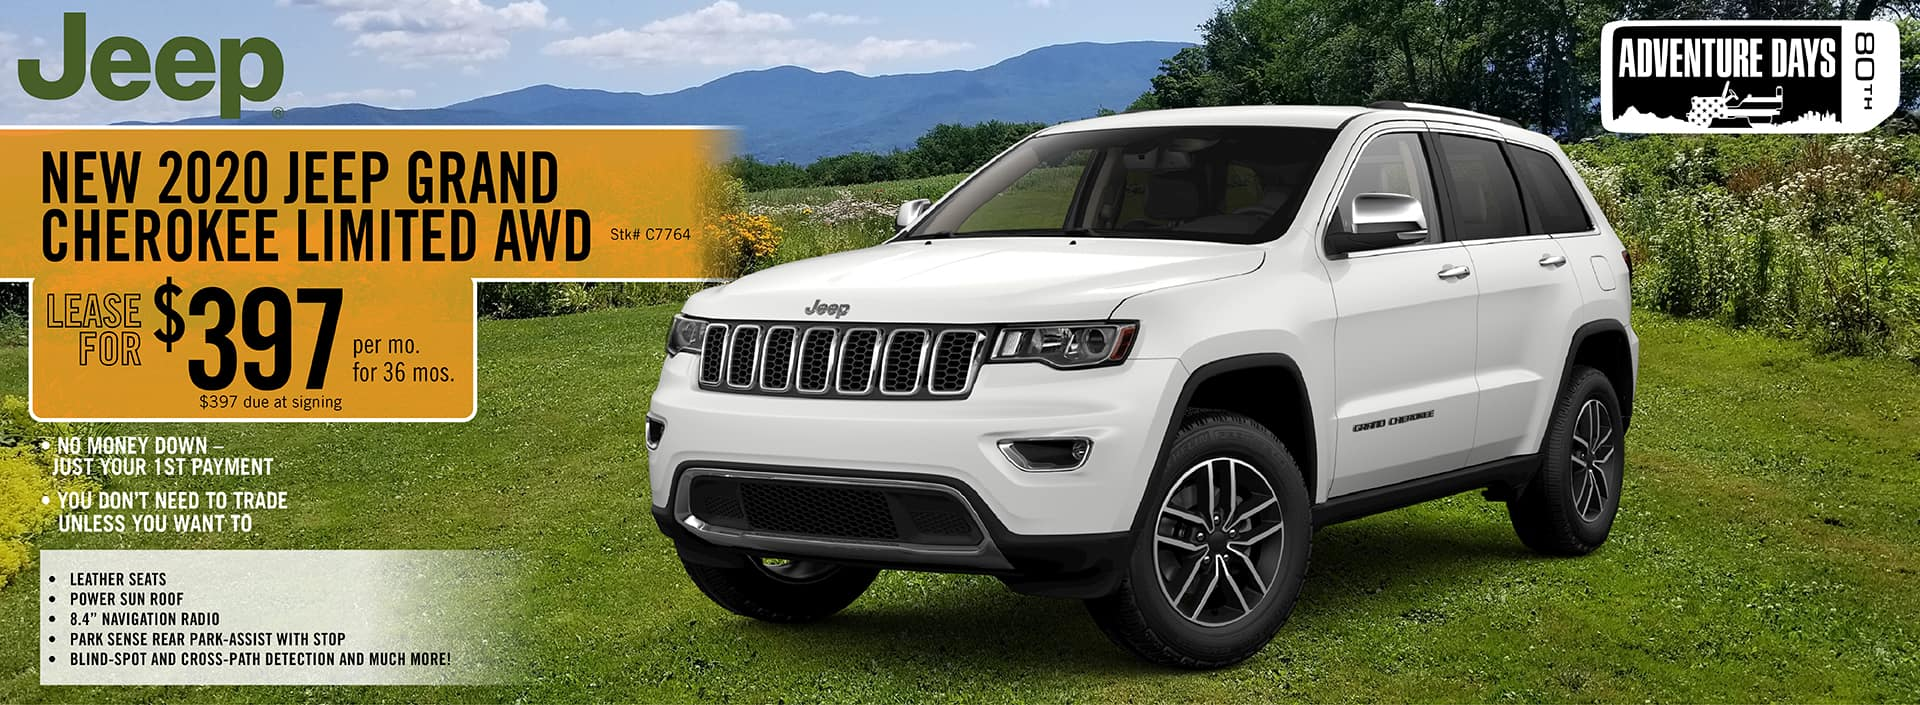 2020 Jeep Grand Cherokee Limited AWD. lease deal $397 for 36 Months | Barre, VT